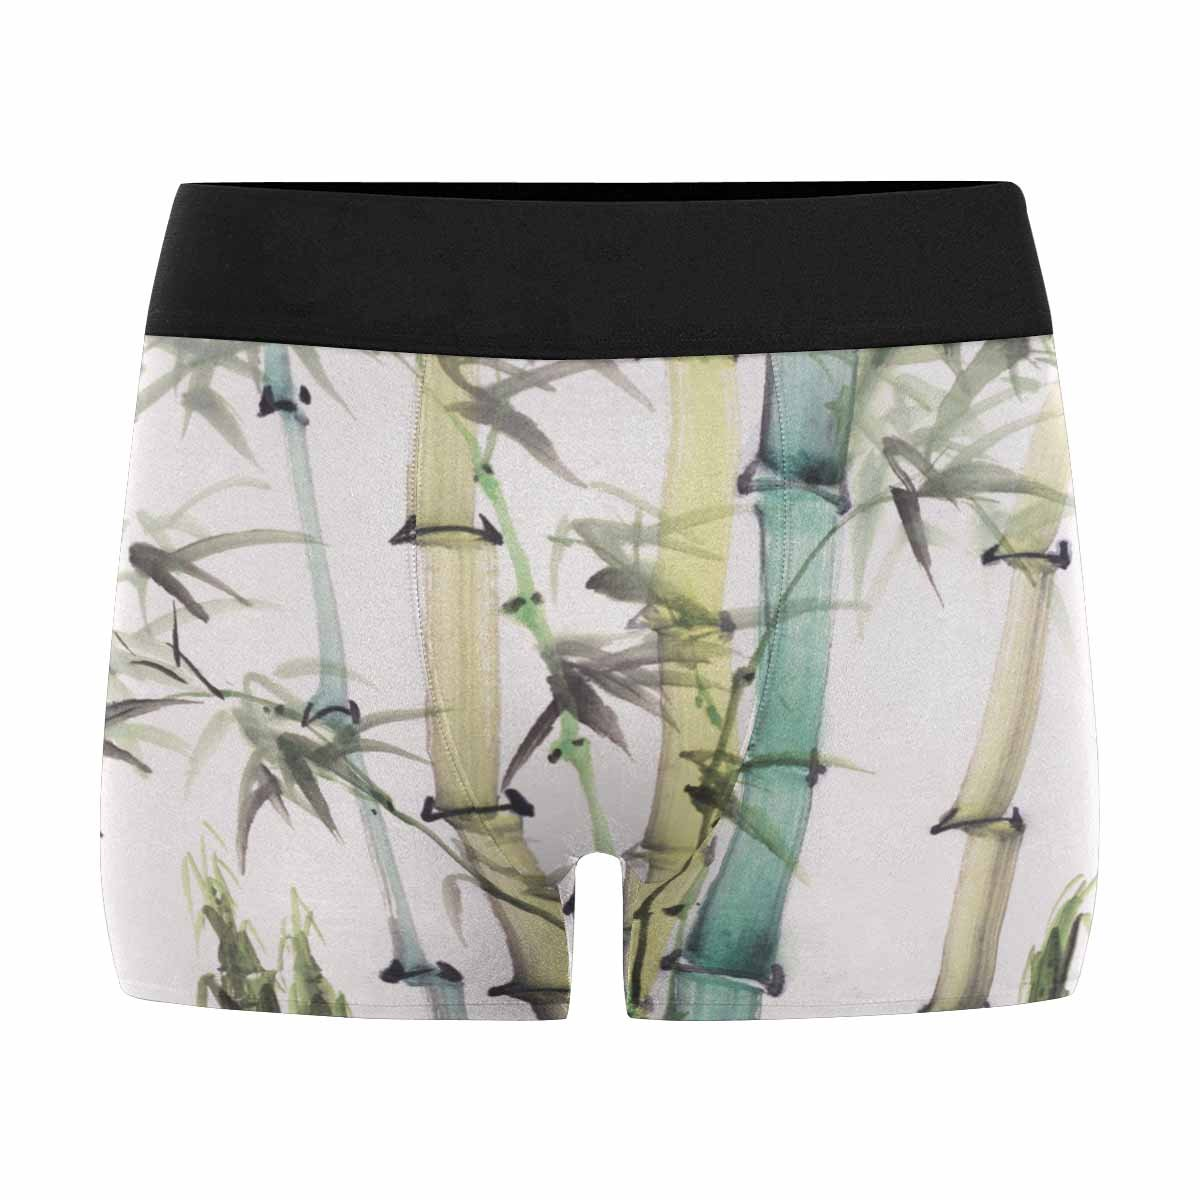 INTERESTPRINT Mens Boxer Briefs Underwear Chinese Painting of Bamboo XS-3XL